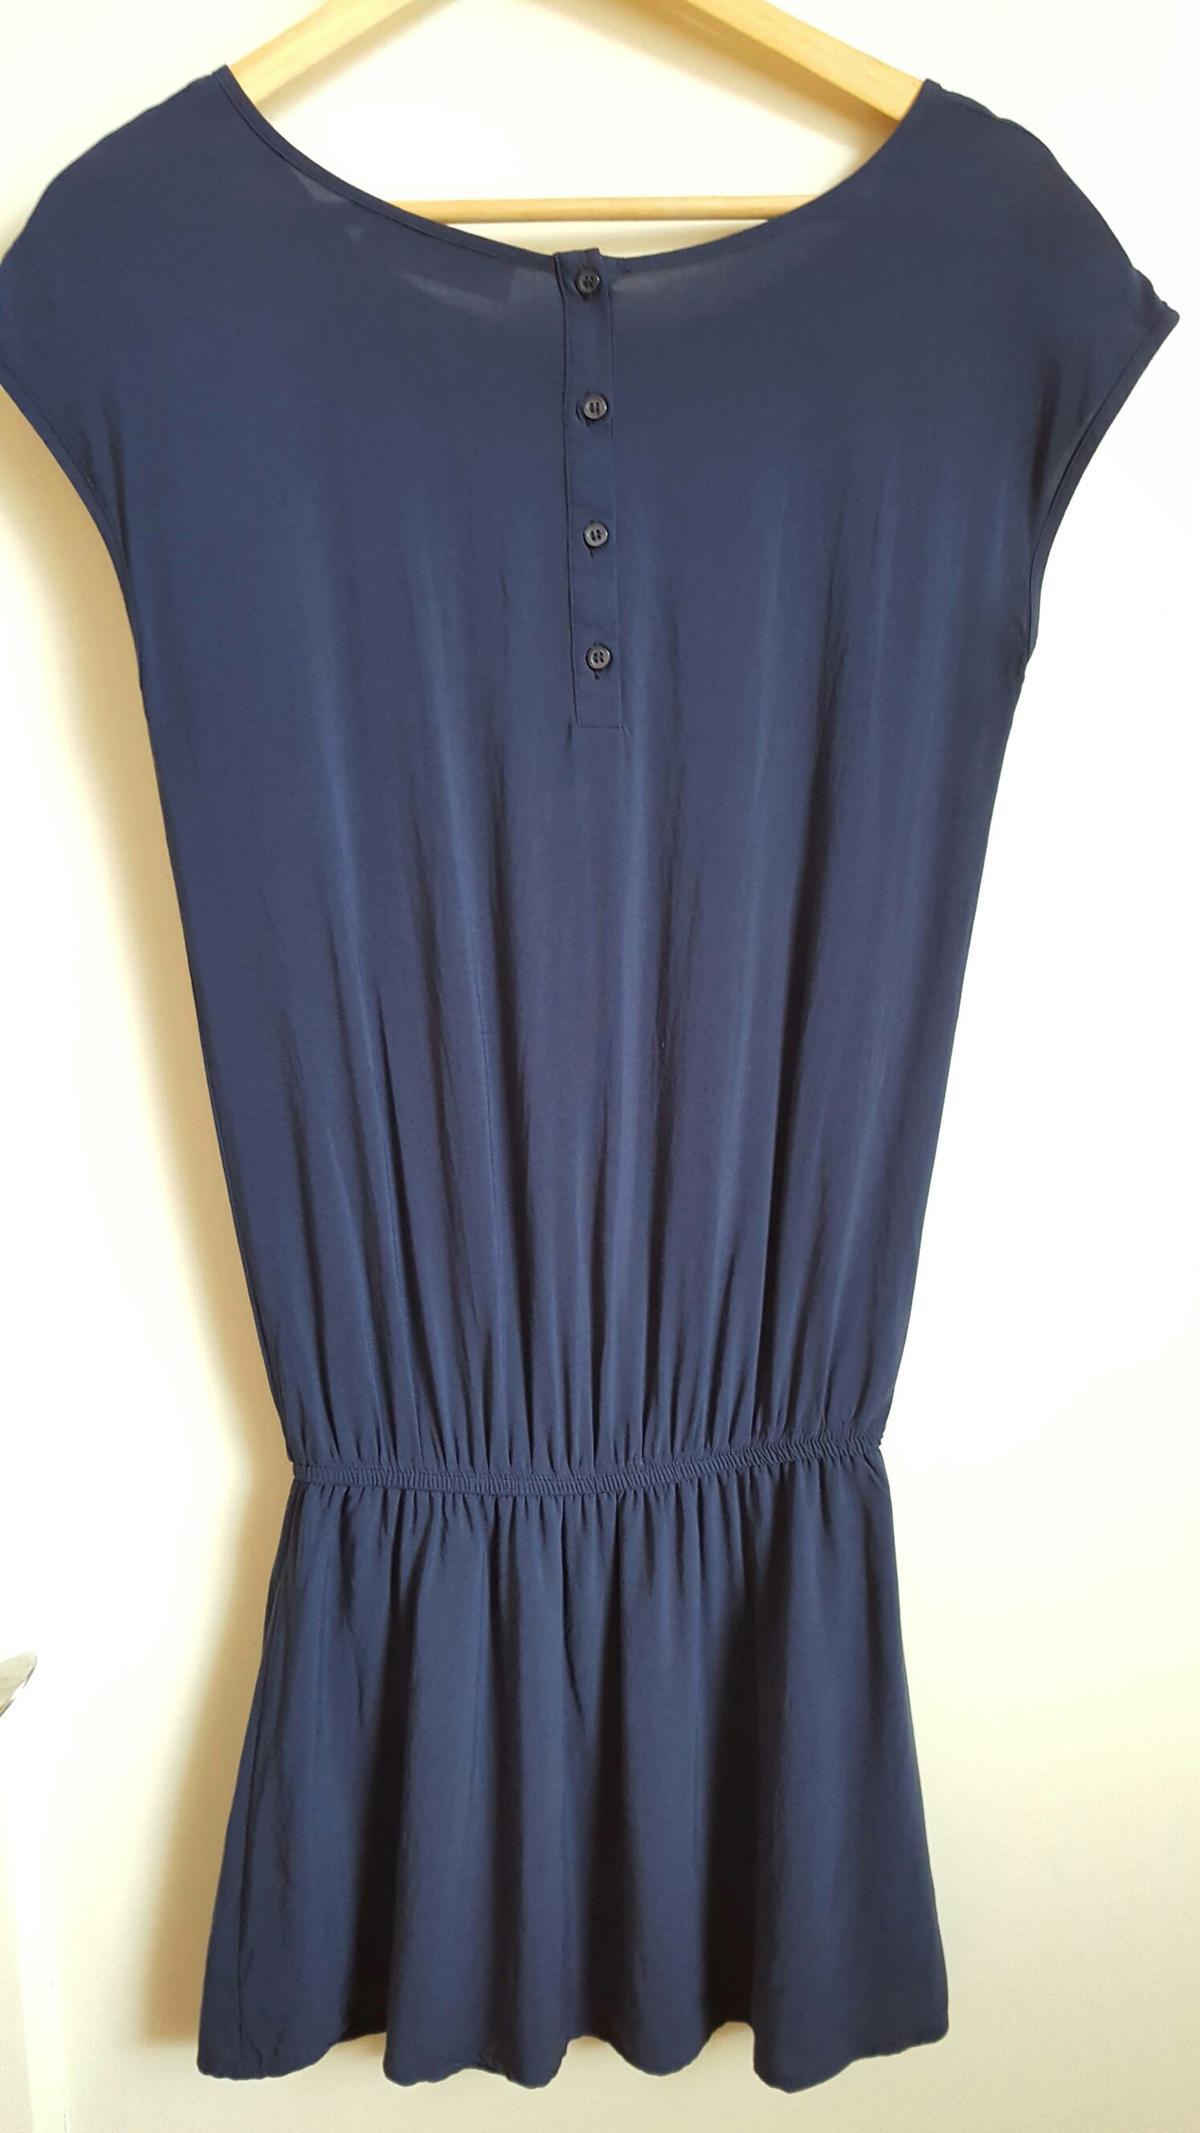 Blau Kurze Kleid In 34130 Kassel For 7 00 For Sale Shpock